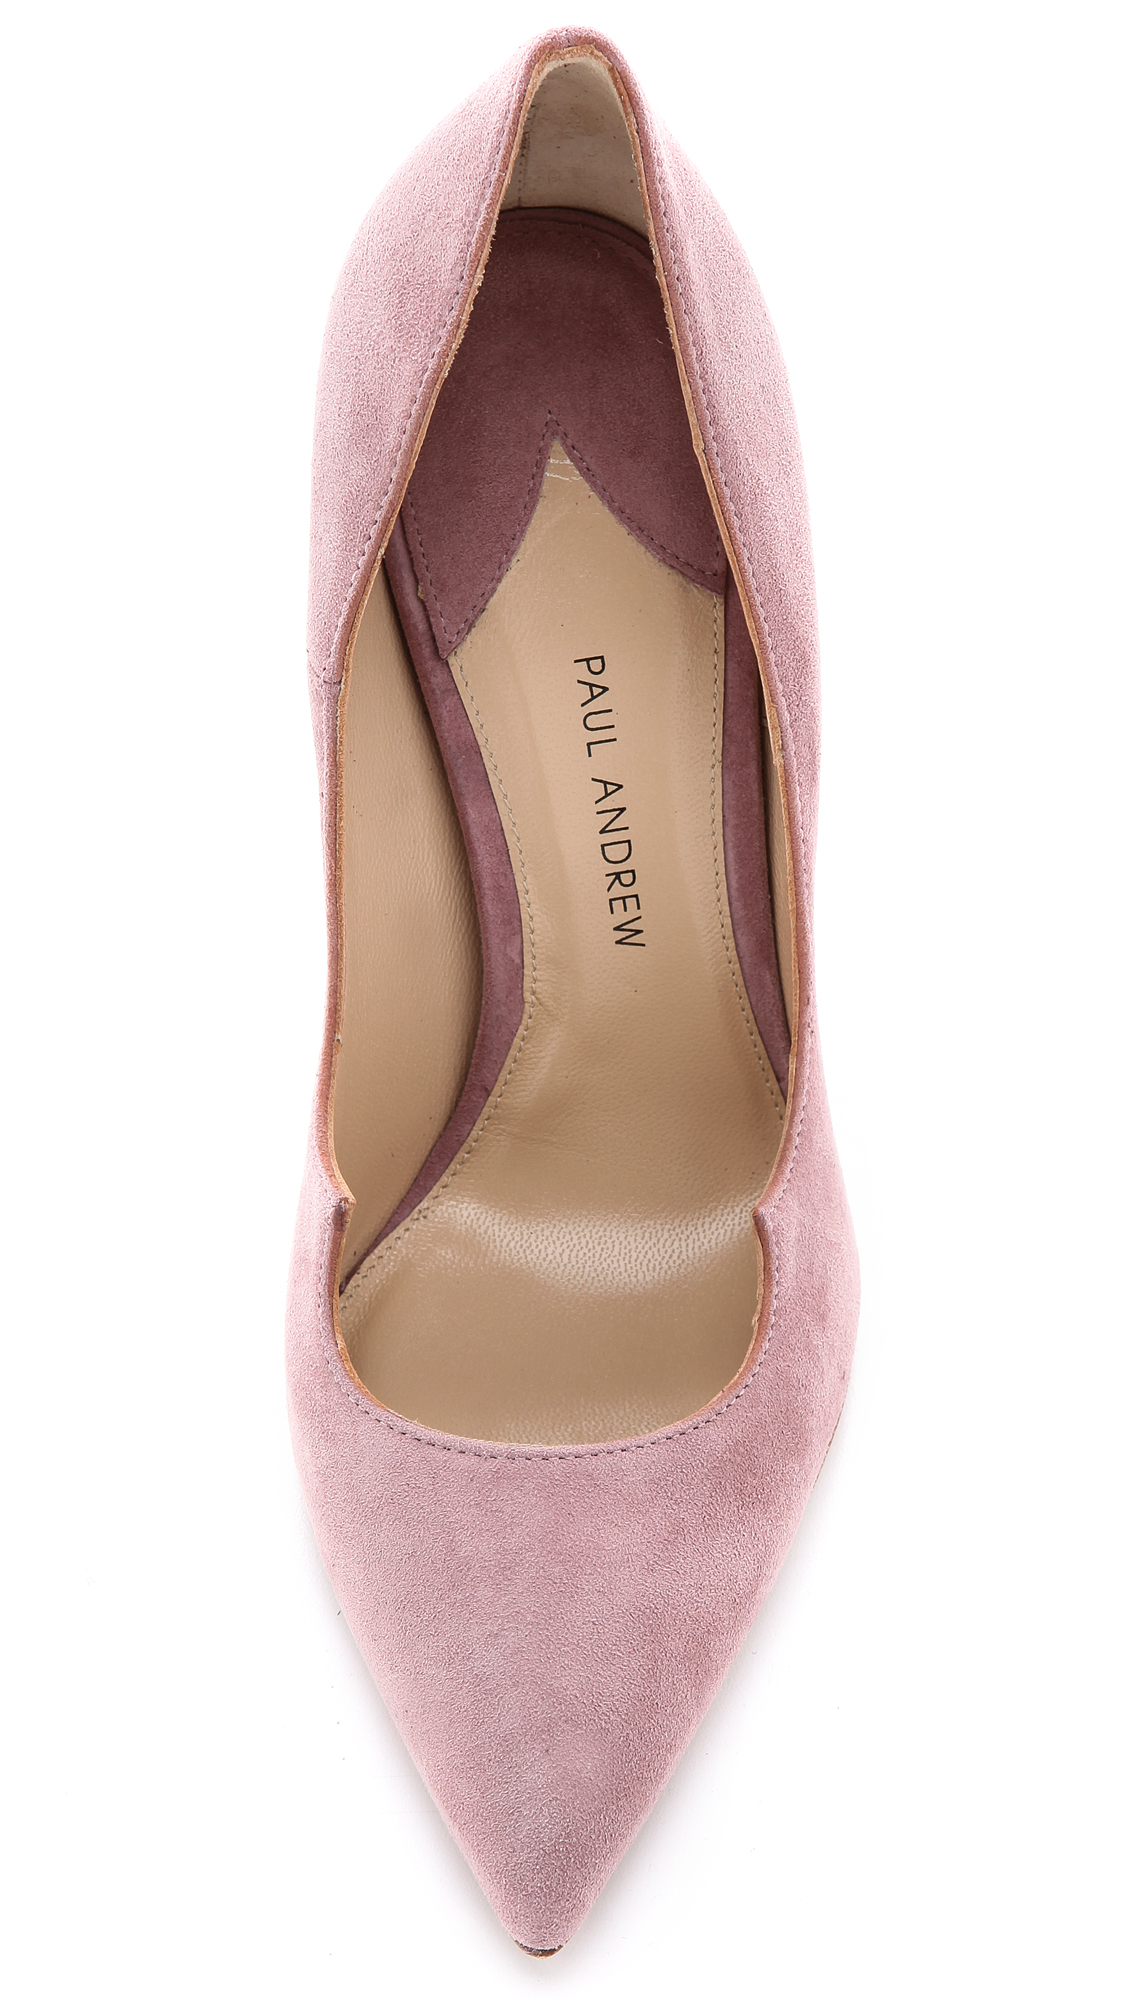 Paul Andrew Zenadia Pumps Dusty Rose In Pink Lyst